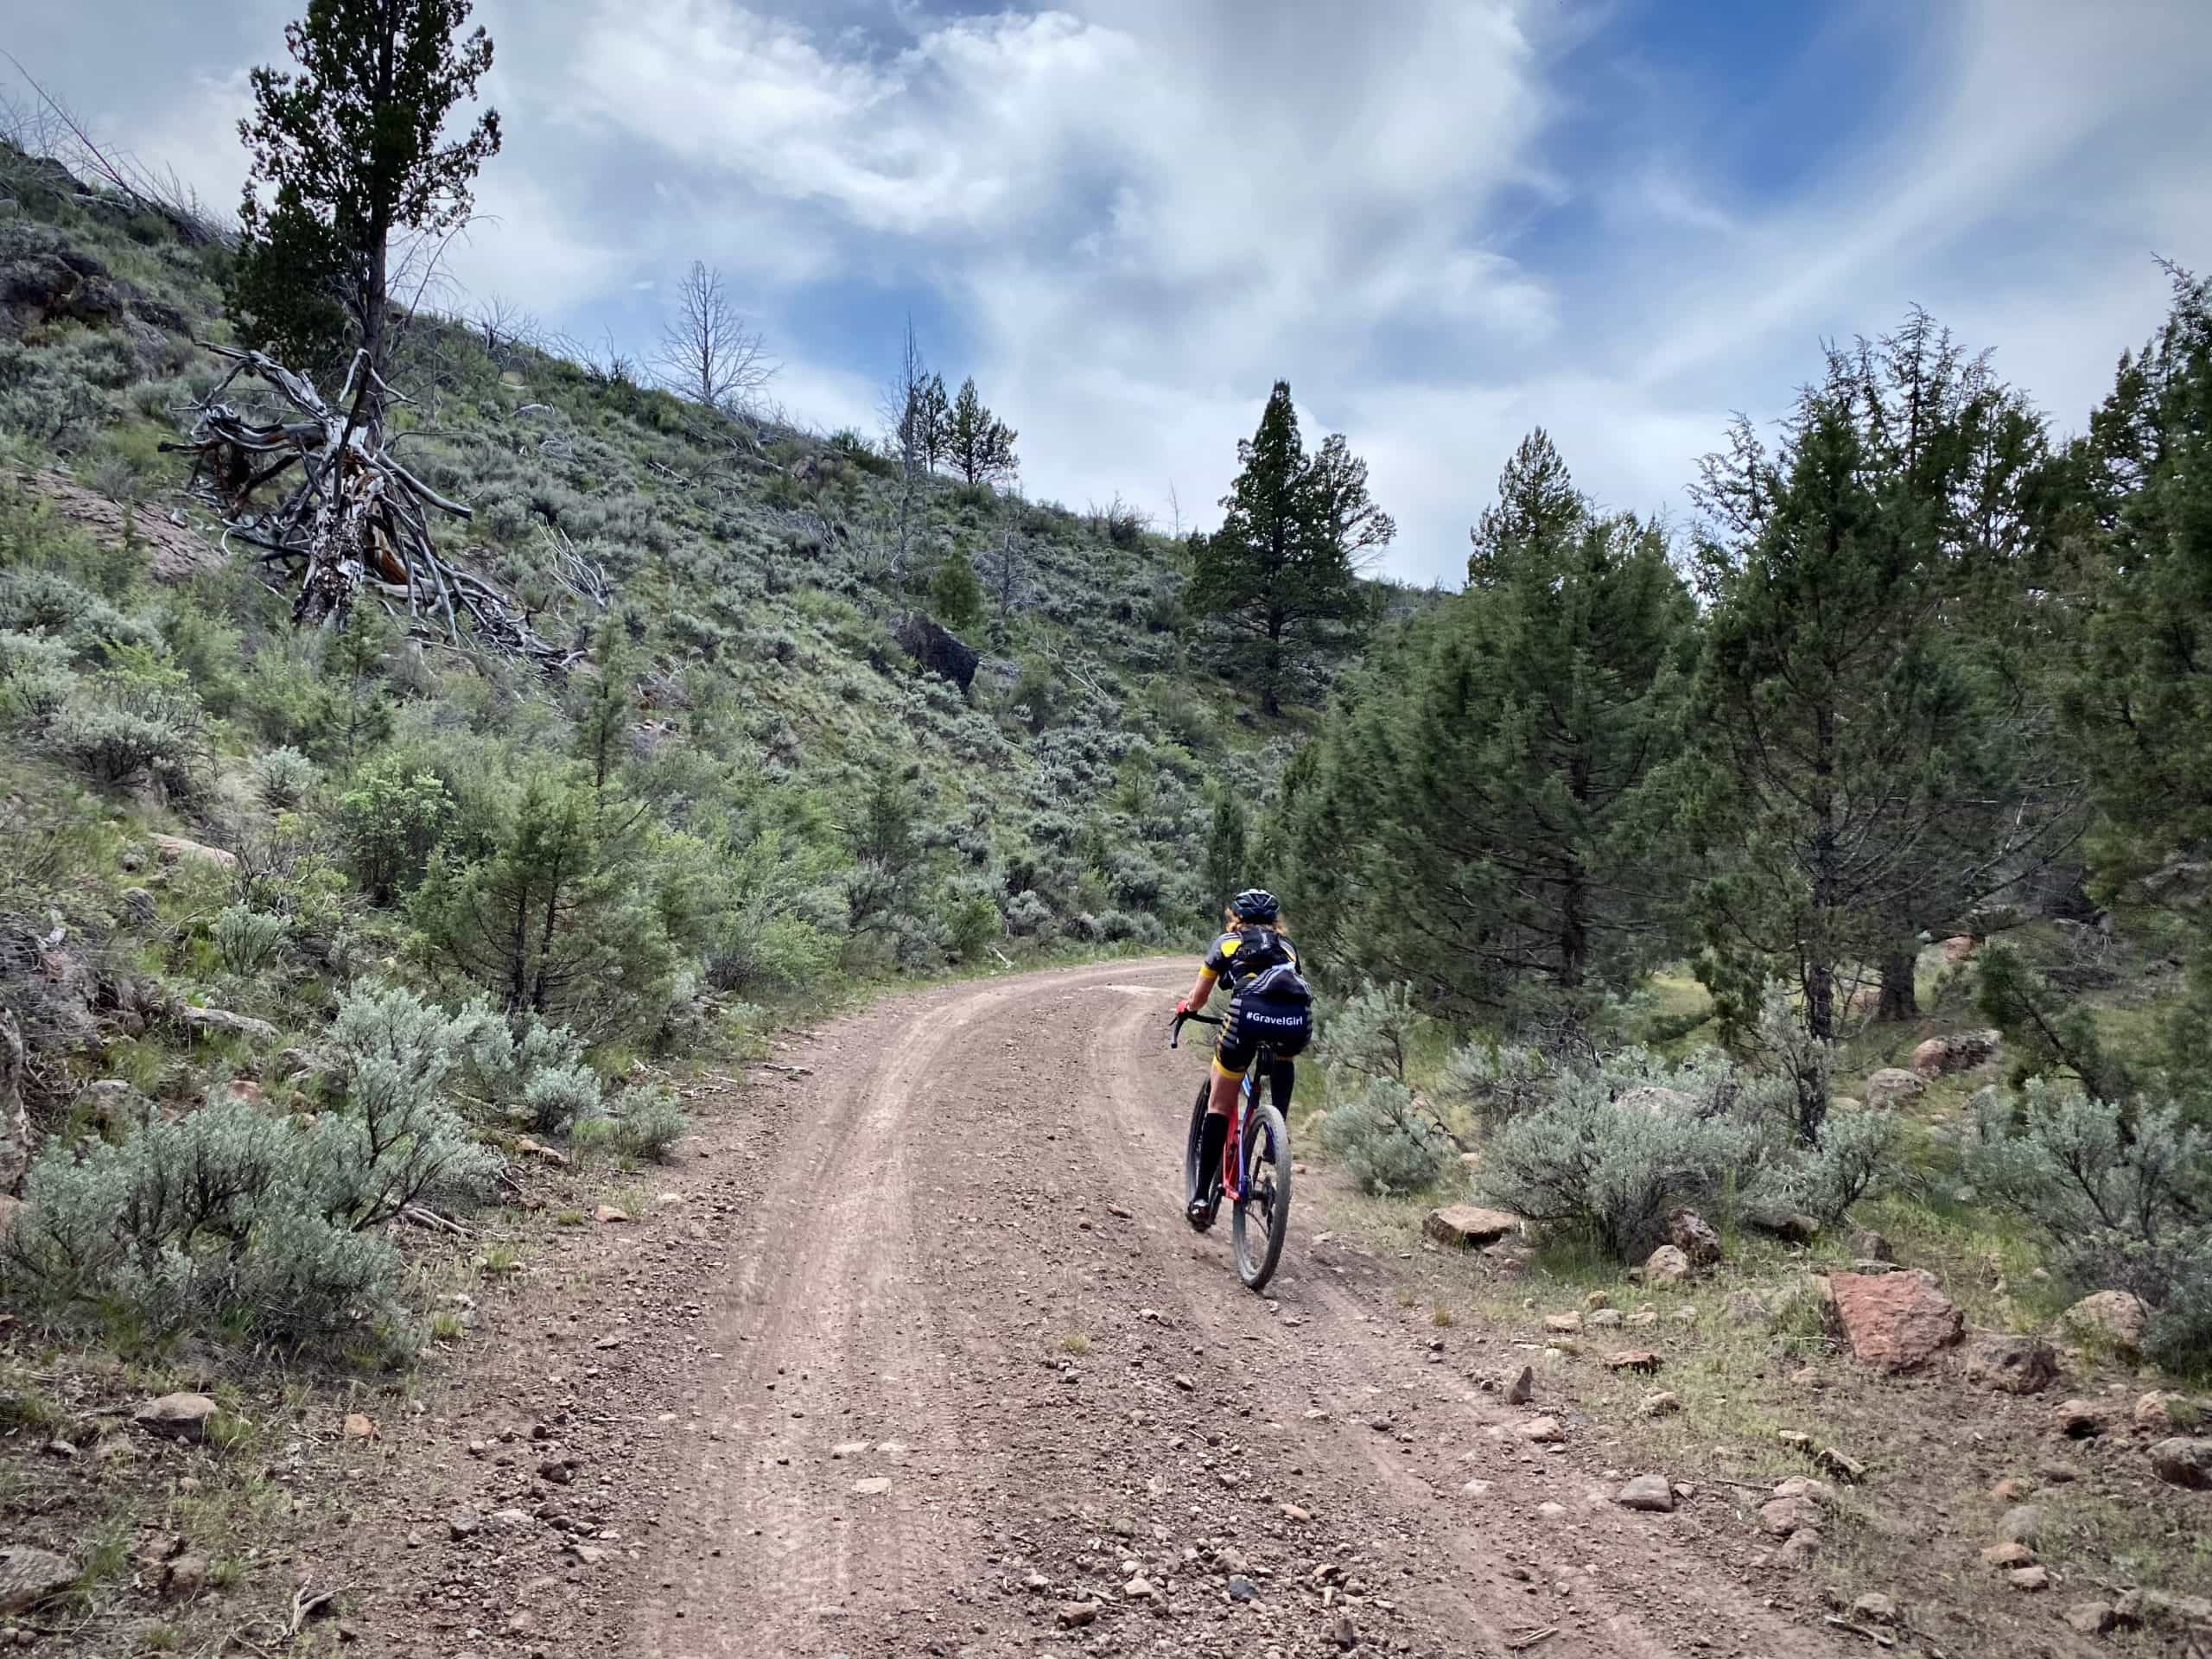 Gravel Girl riding the last segment of the Dick Miller Canyon in Central Oregon.